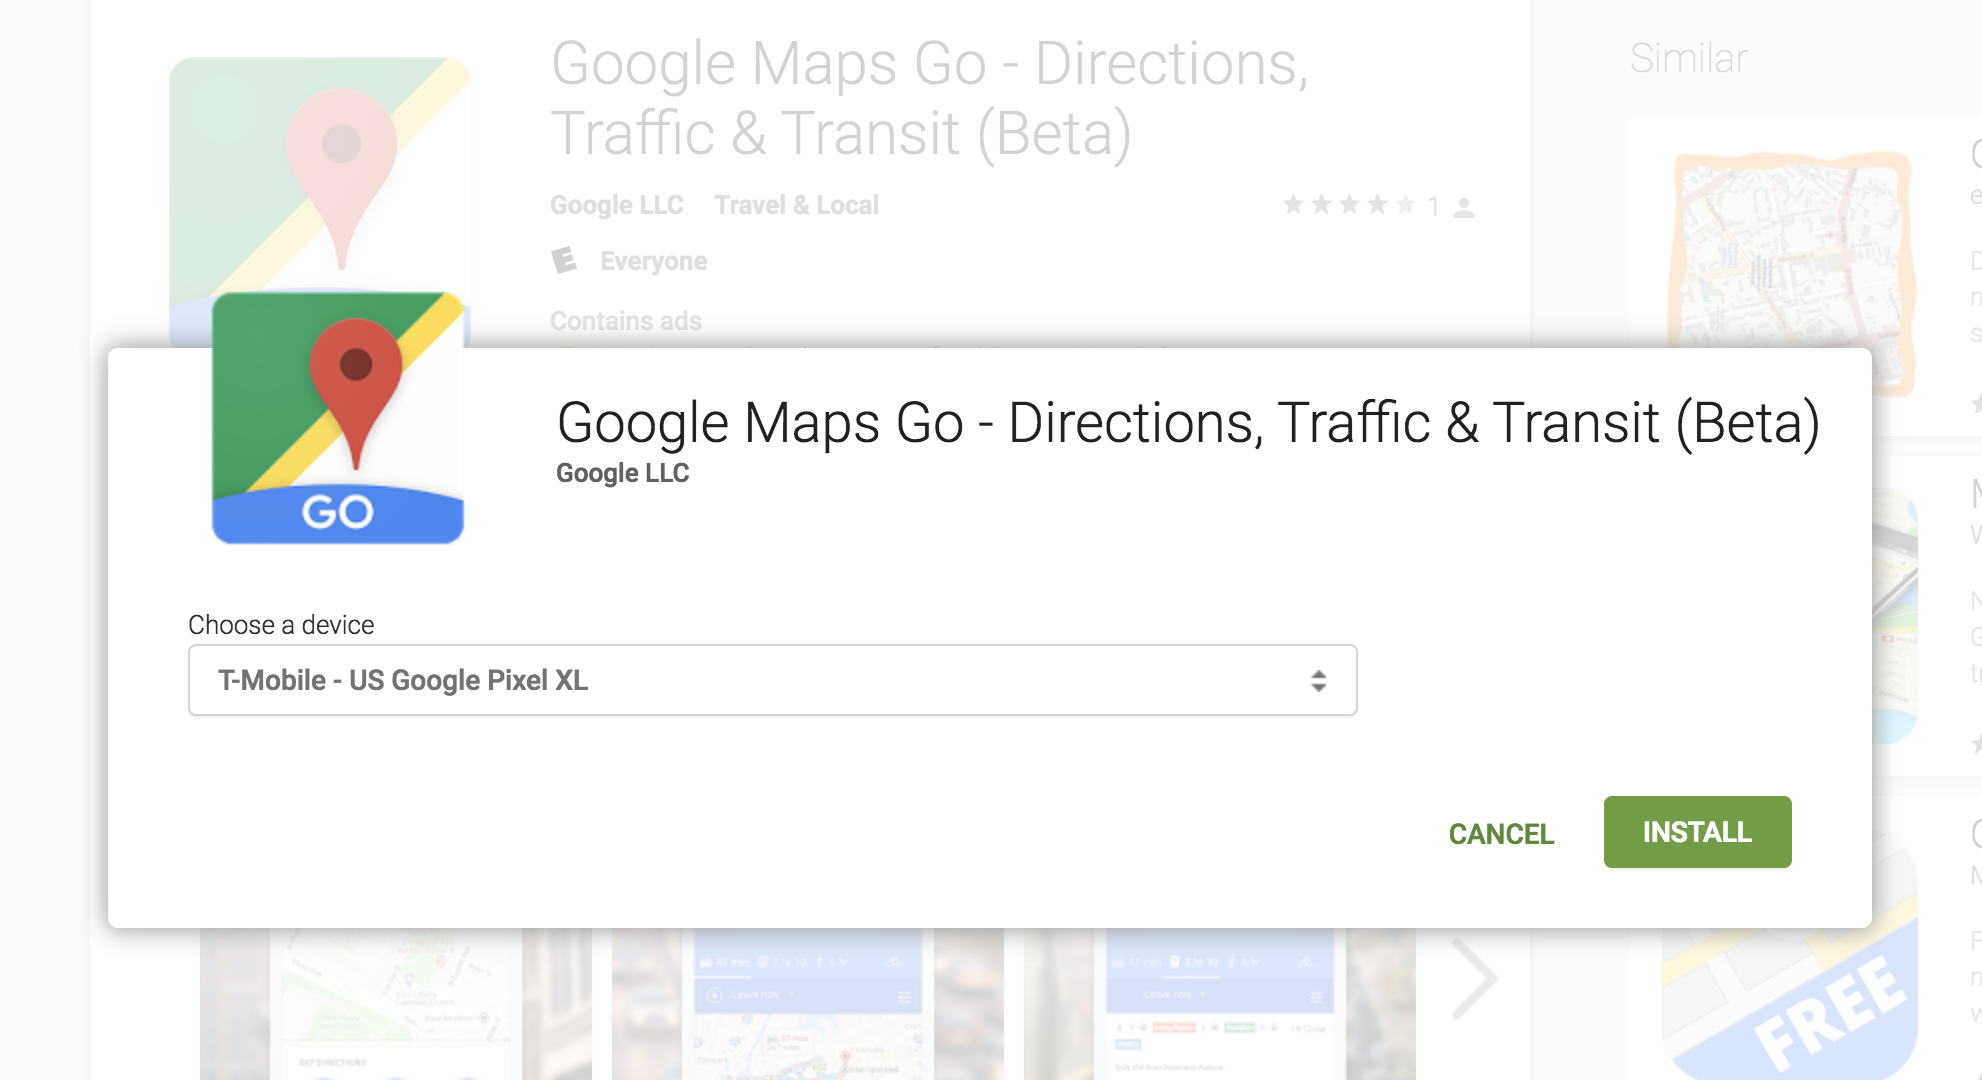 Update: Now available for everyone] Google Maps Go beta ... on satellite map images with missing or unclear data, google chrome, go to amazon, bing maps, route planning software, google map maker, google goggles, yahoo! maps, google voice, google earth, go to email, go to home, go to settings, go to internet, google translate, go to mail, go to facebook, google moon, google mars, google latitude, google search, google sky, web mapping, google street view, go to netflix, go to ebay, google docs,